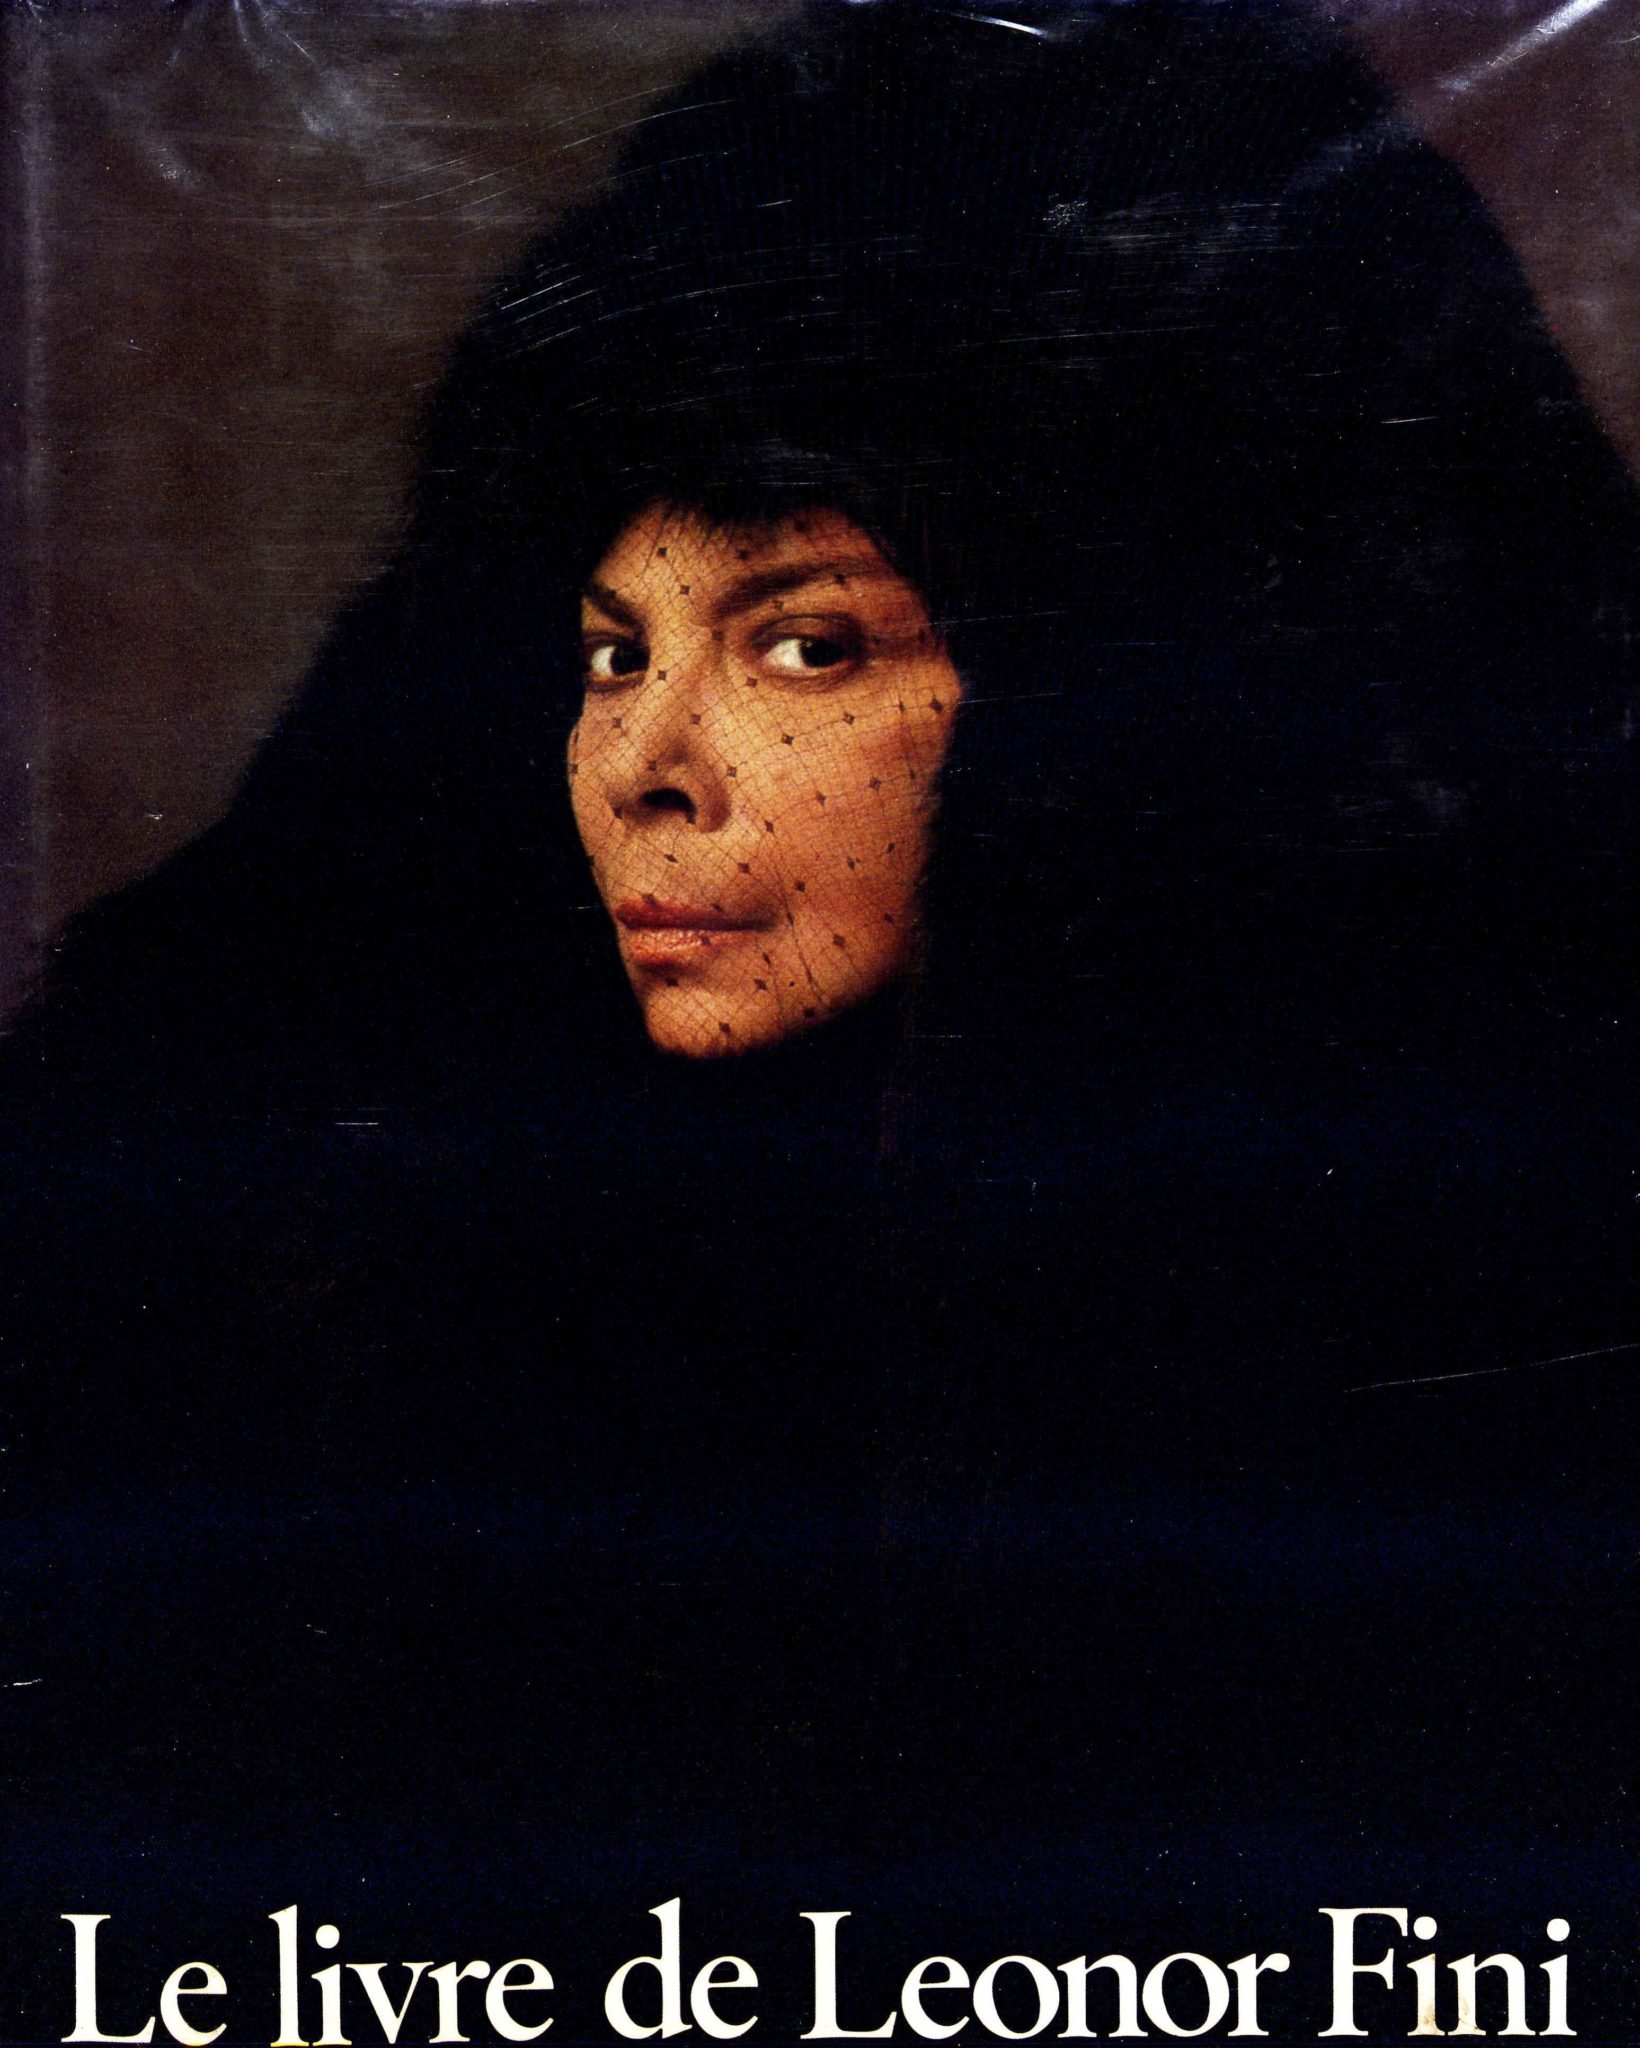 Leonor Fini, <br /><em>Le Livre de Leonor Fini. Peintures, dessins, écrits, notes de Leonor Fini</em>, 1975